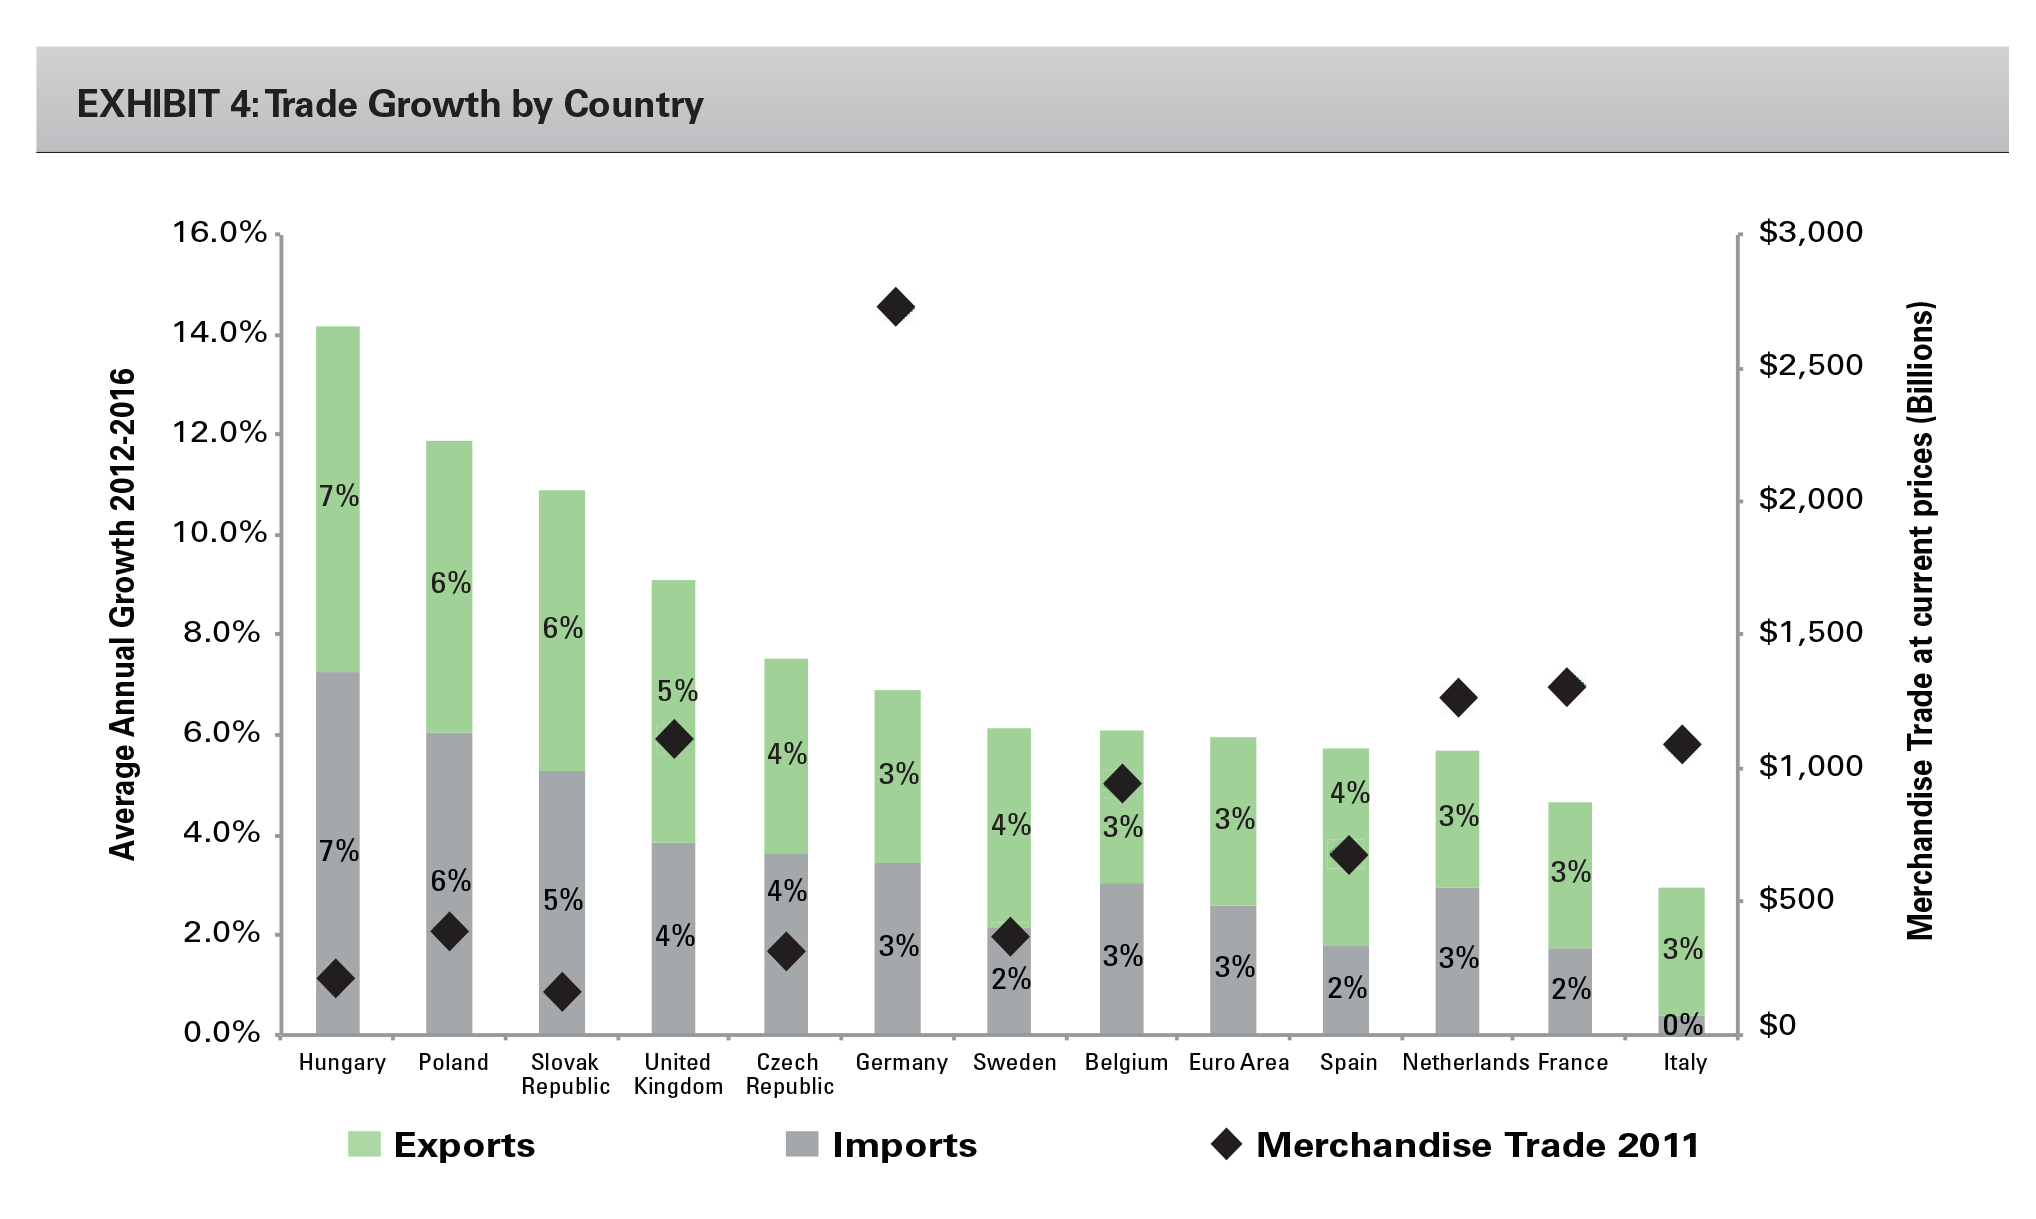 Exhibit 4: Trade Growth by Country